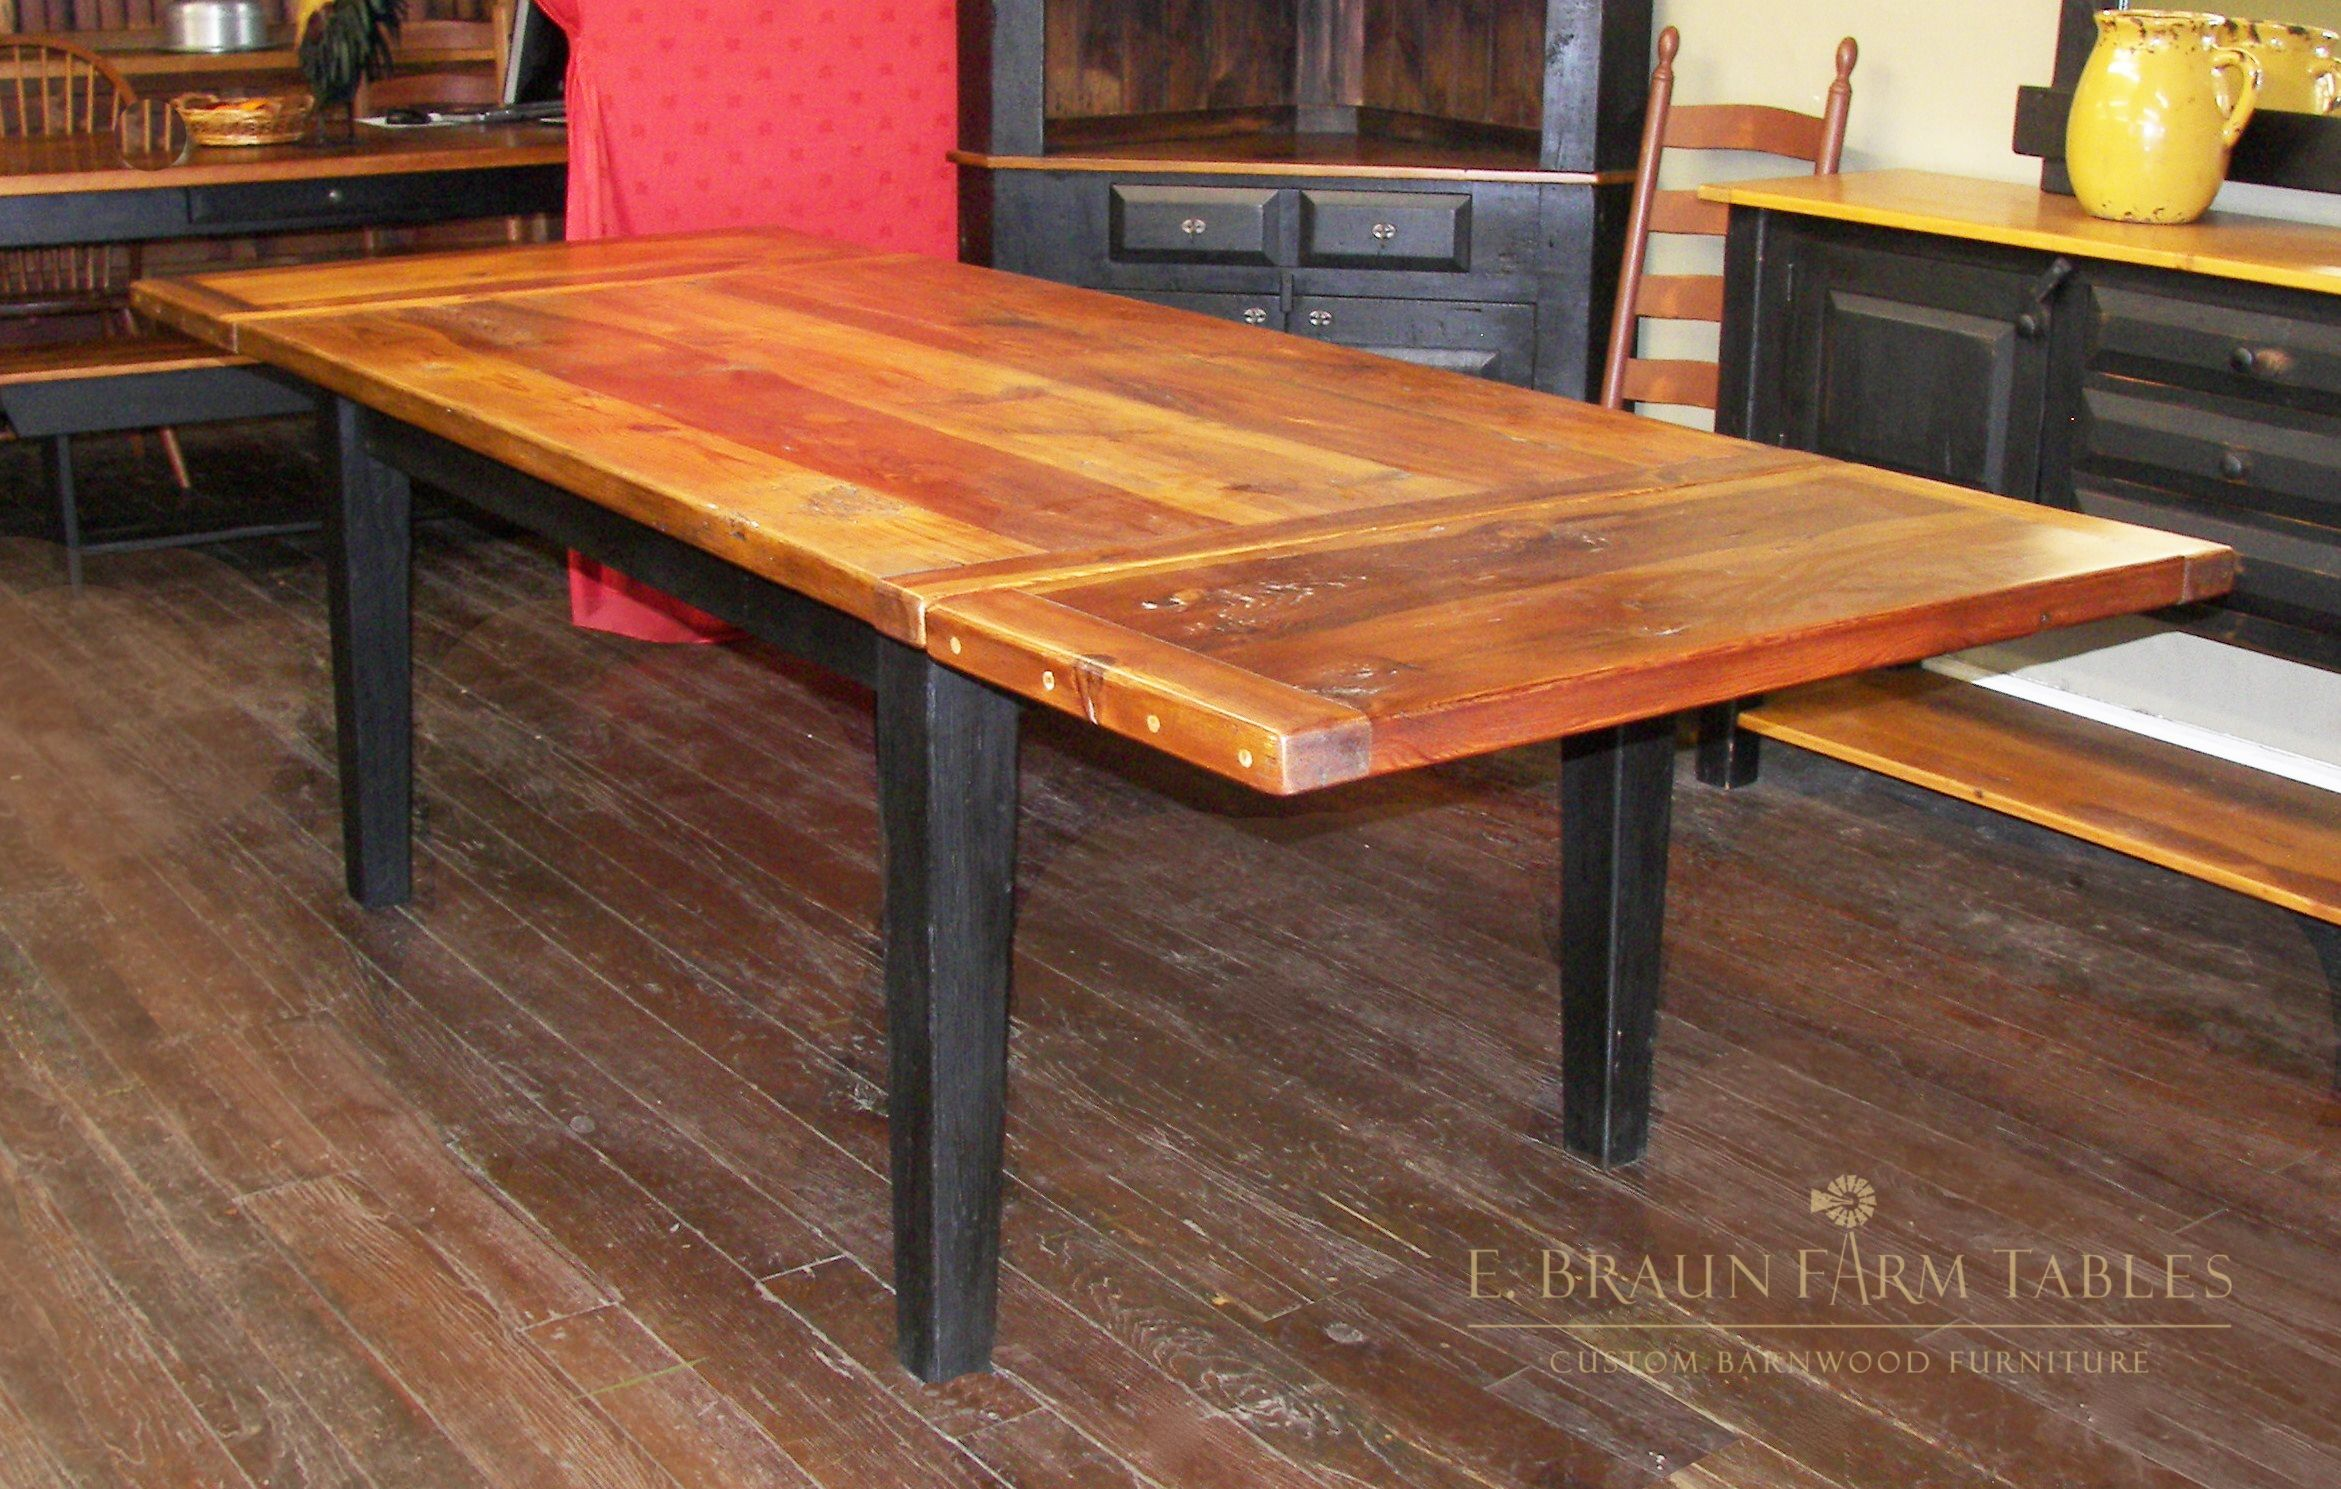 reclaimed yellow pine table crafted by E. Braun Farm